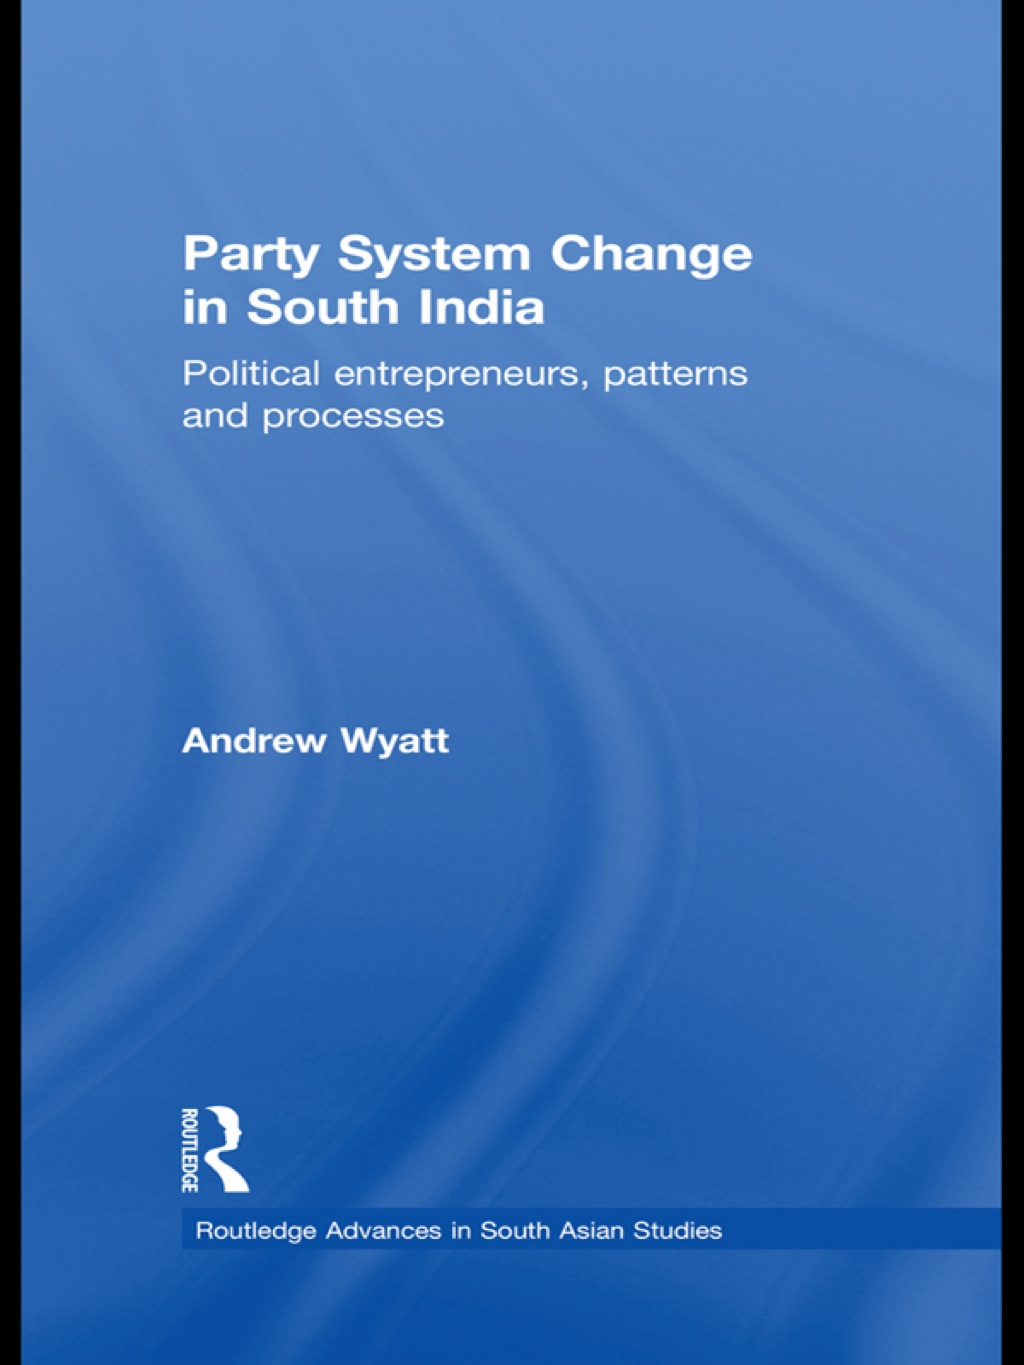 Party System Change In South India (ebook)